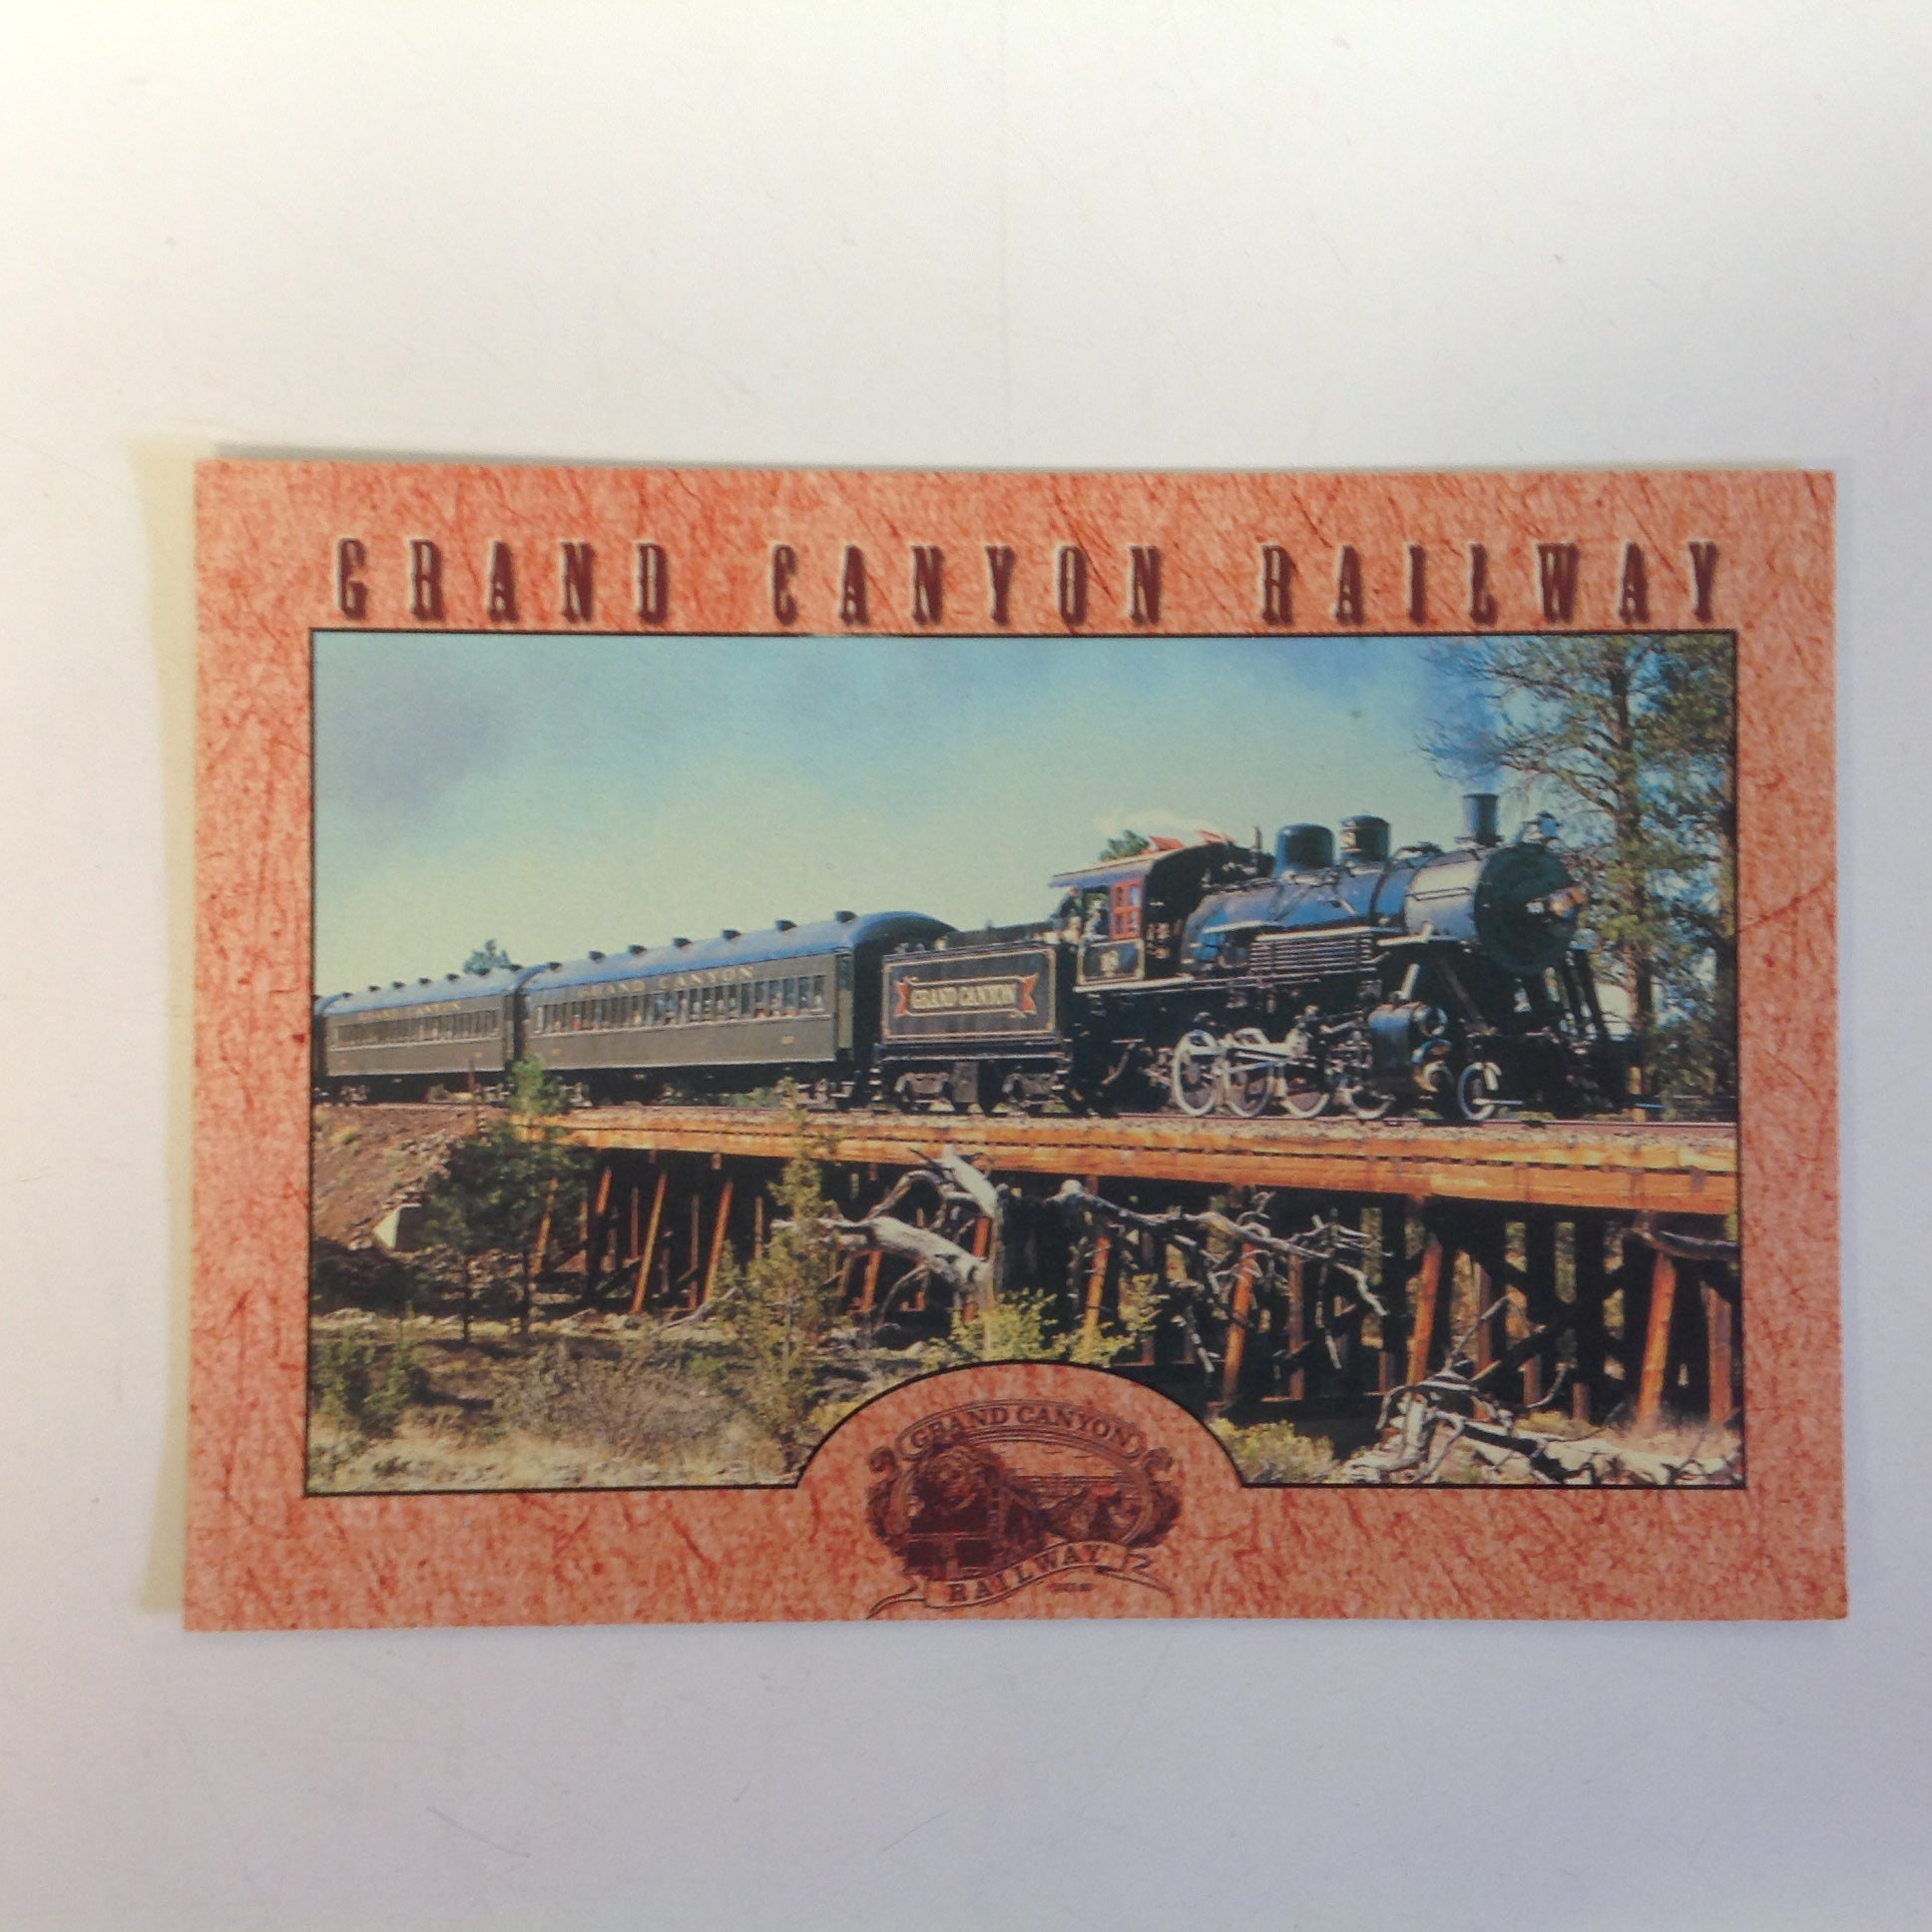 Vintage Terrell Publishing Color Postcard Al Richmond Photo Grand Canyon Railway Traverses Bridge Across Gulch Williams Arizona